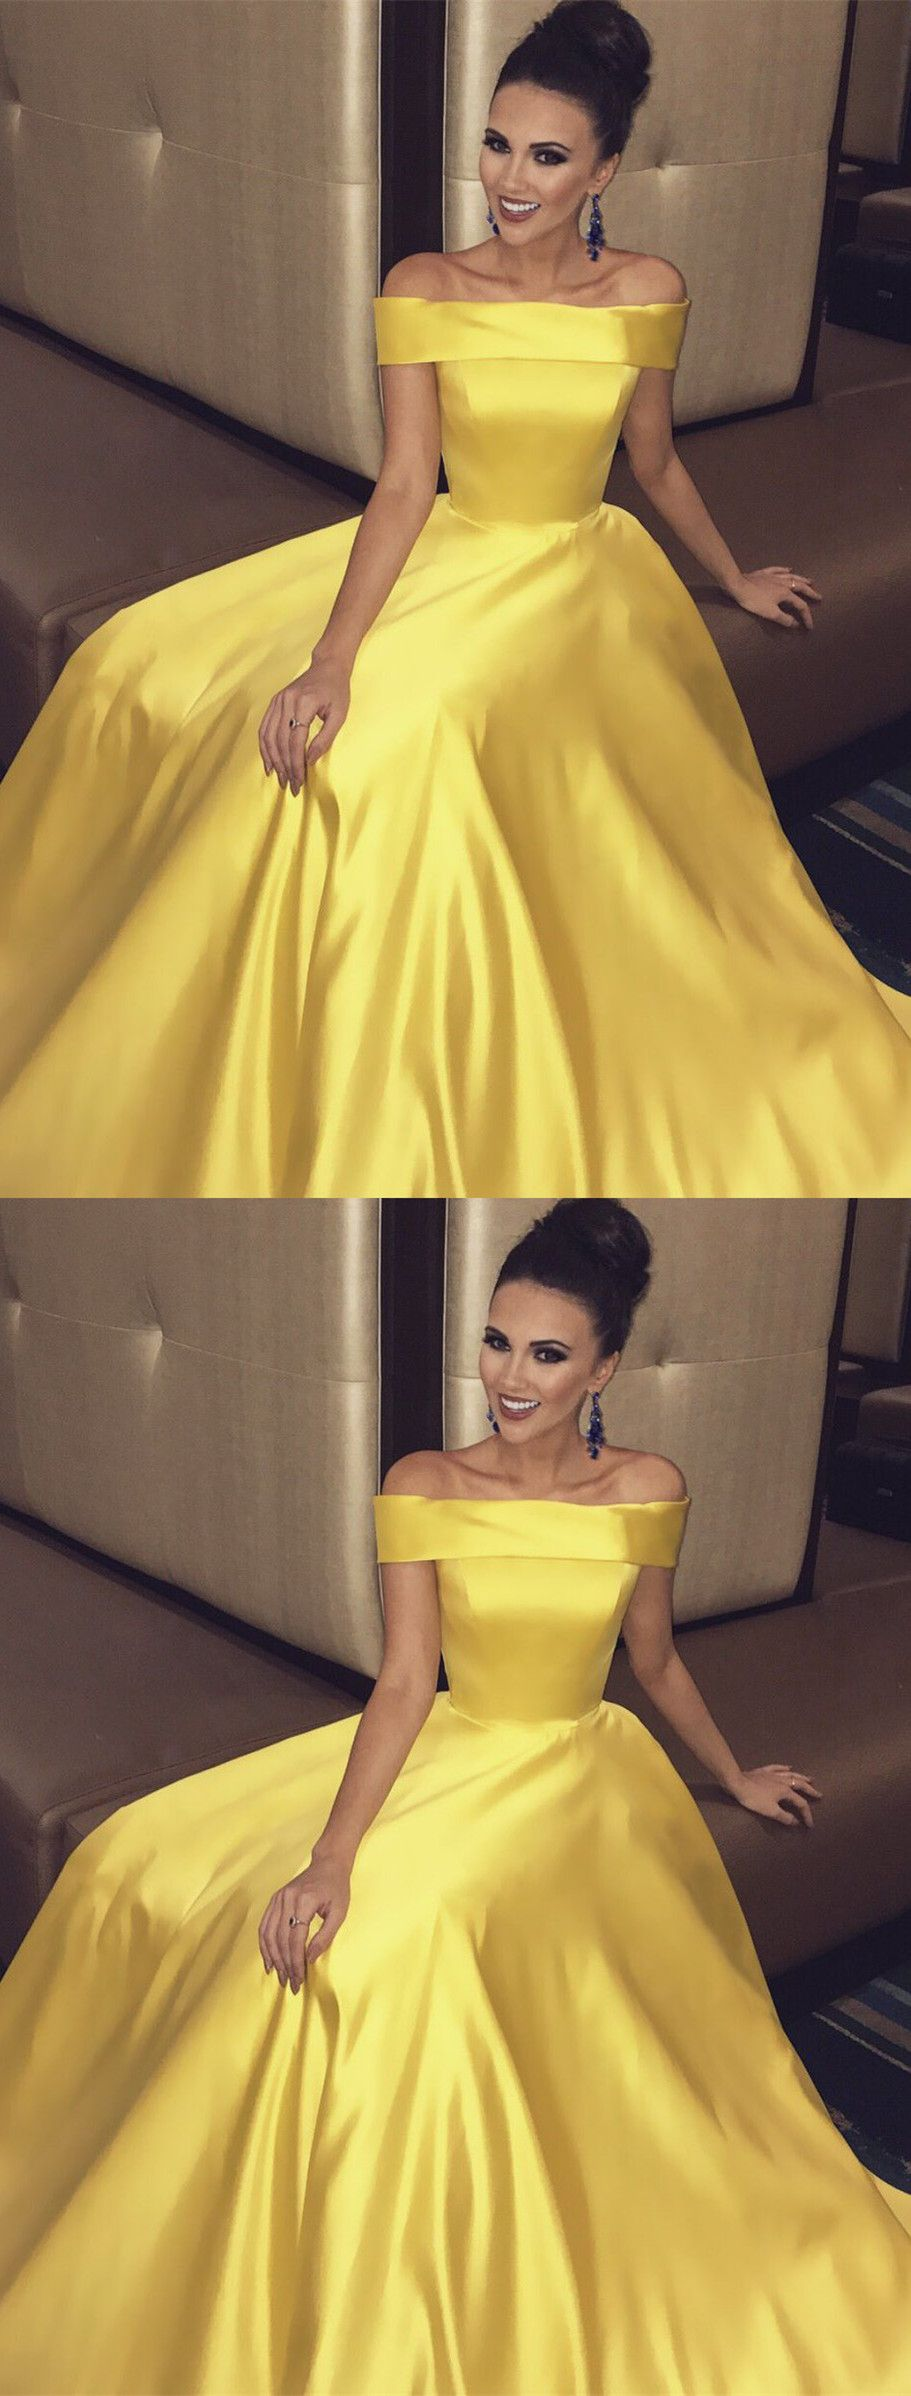 Off the shoulder yellow long prom dress prom dress party